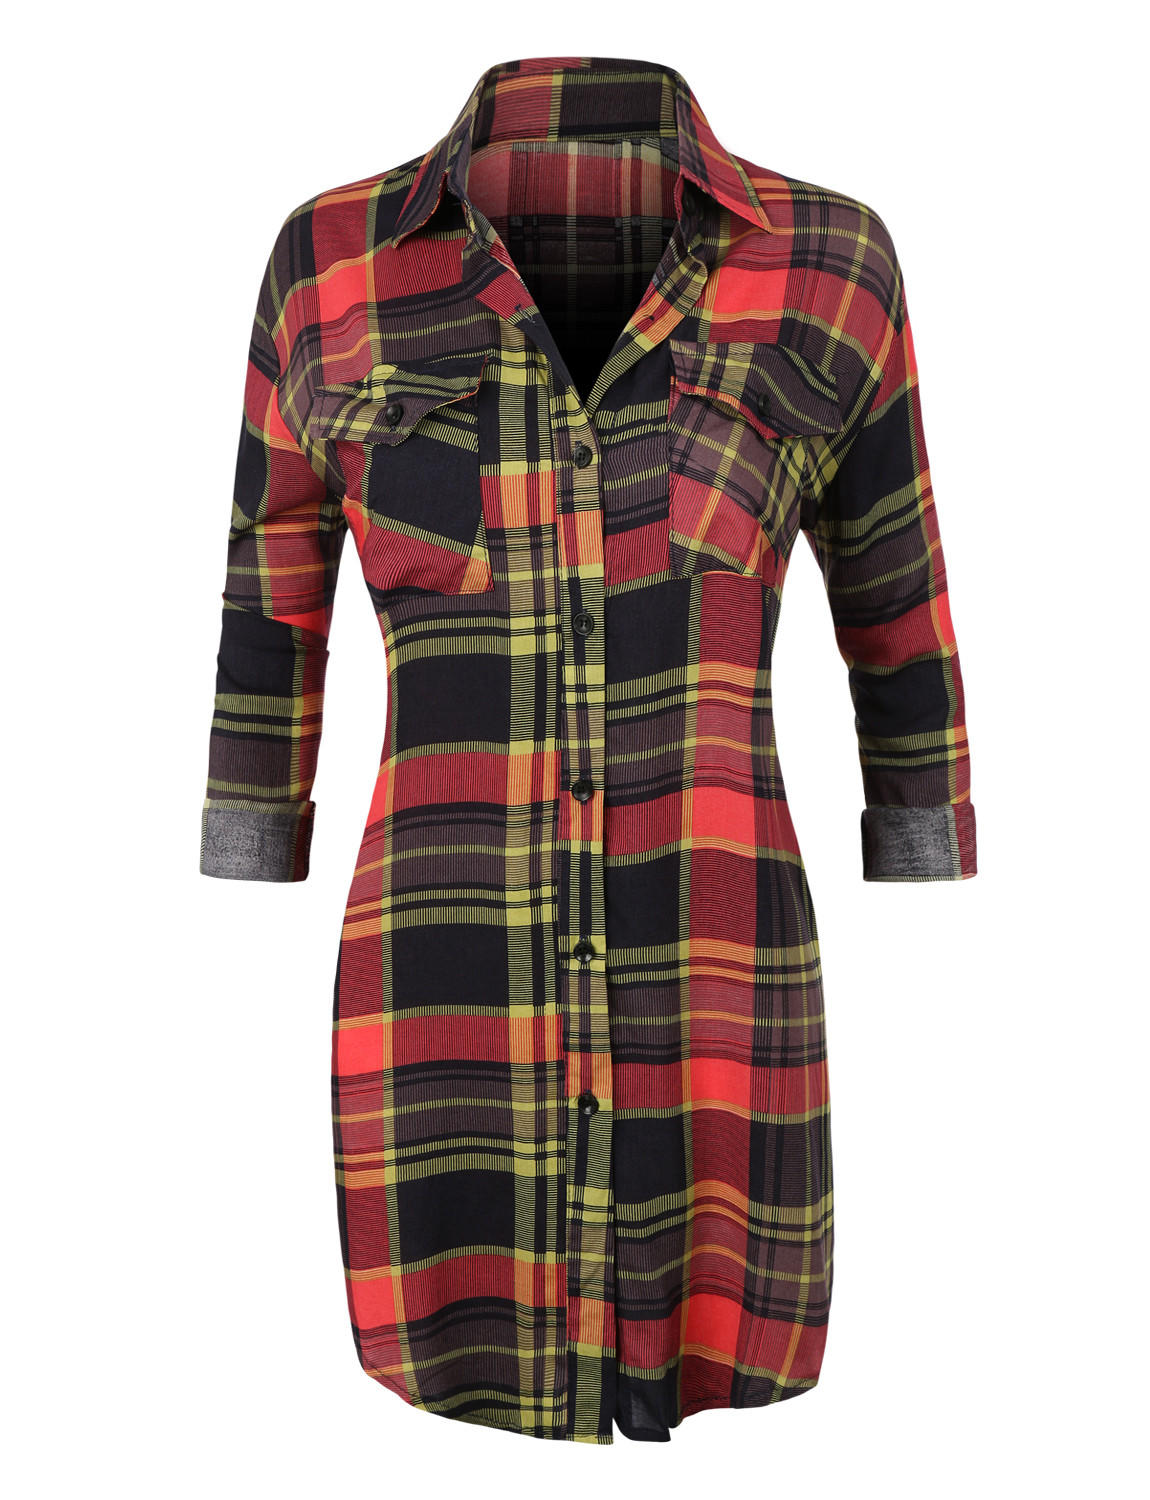 Le3no Womens Casual Plaid Button Down From Le3no Things